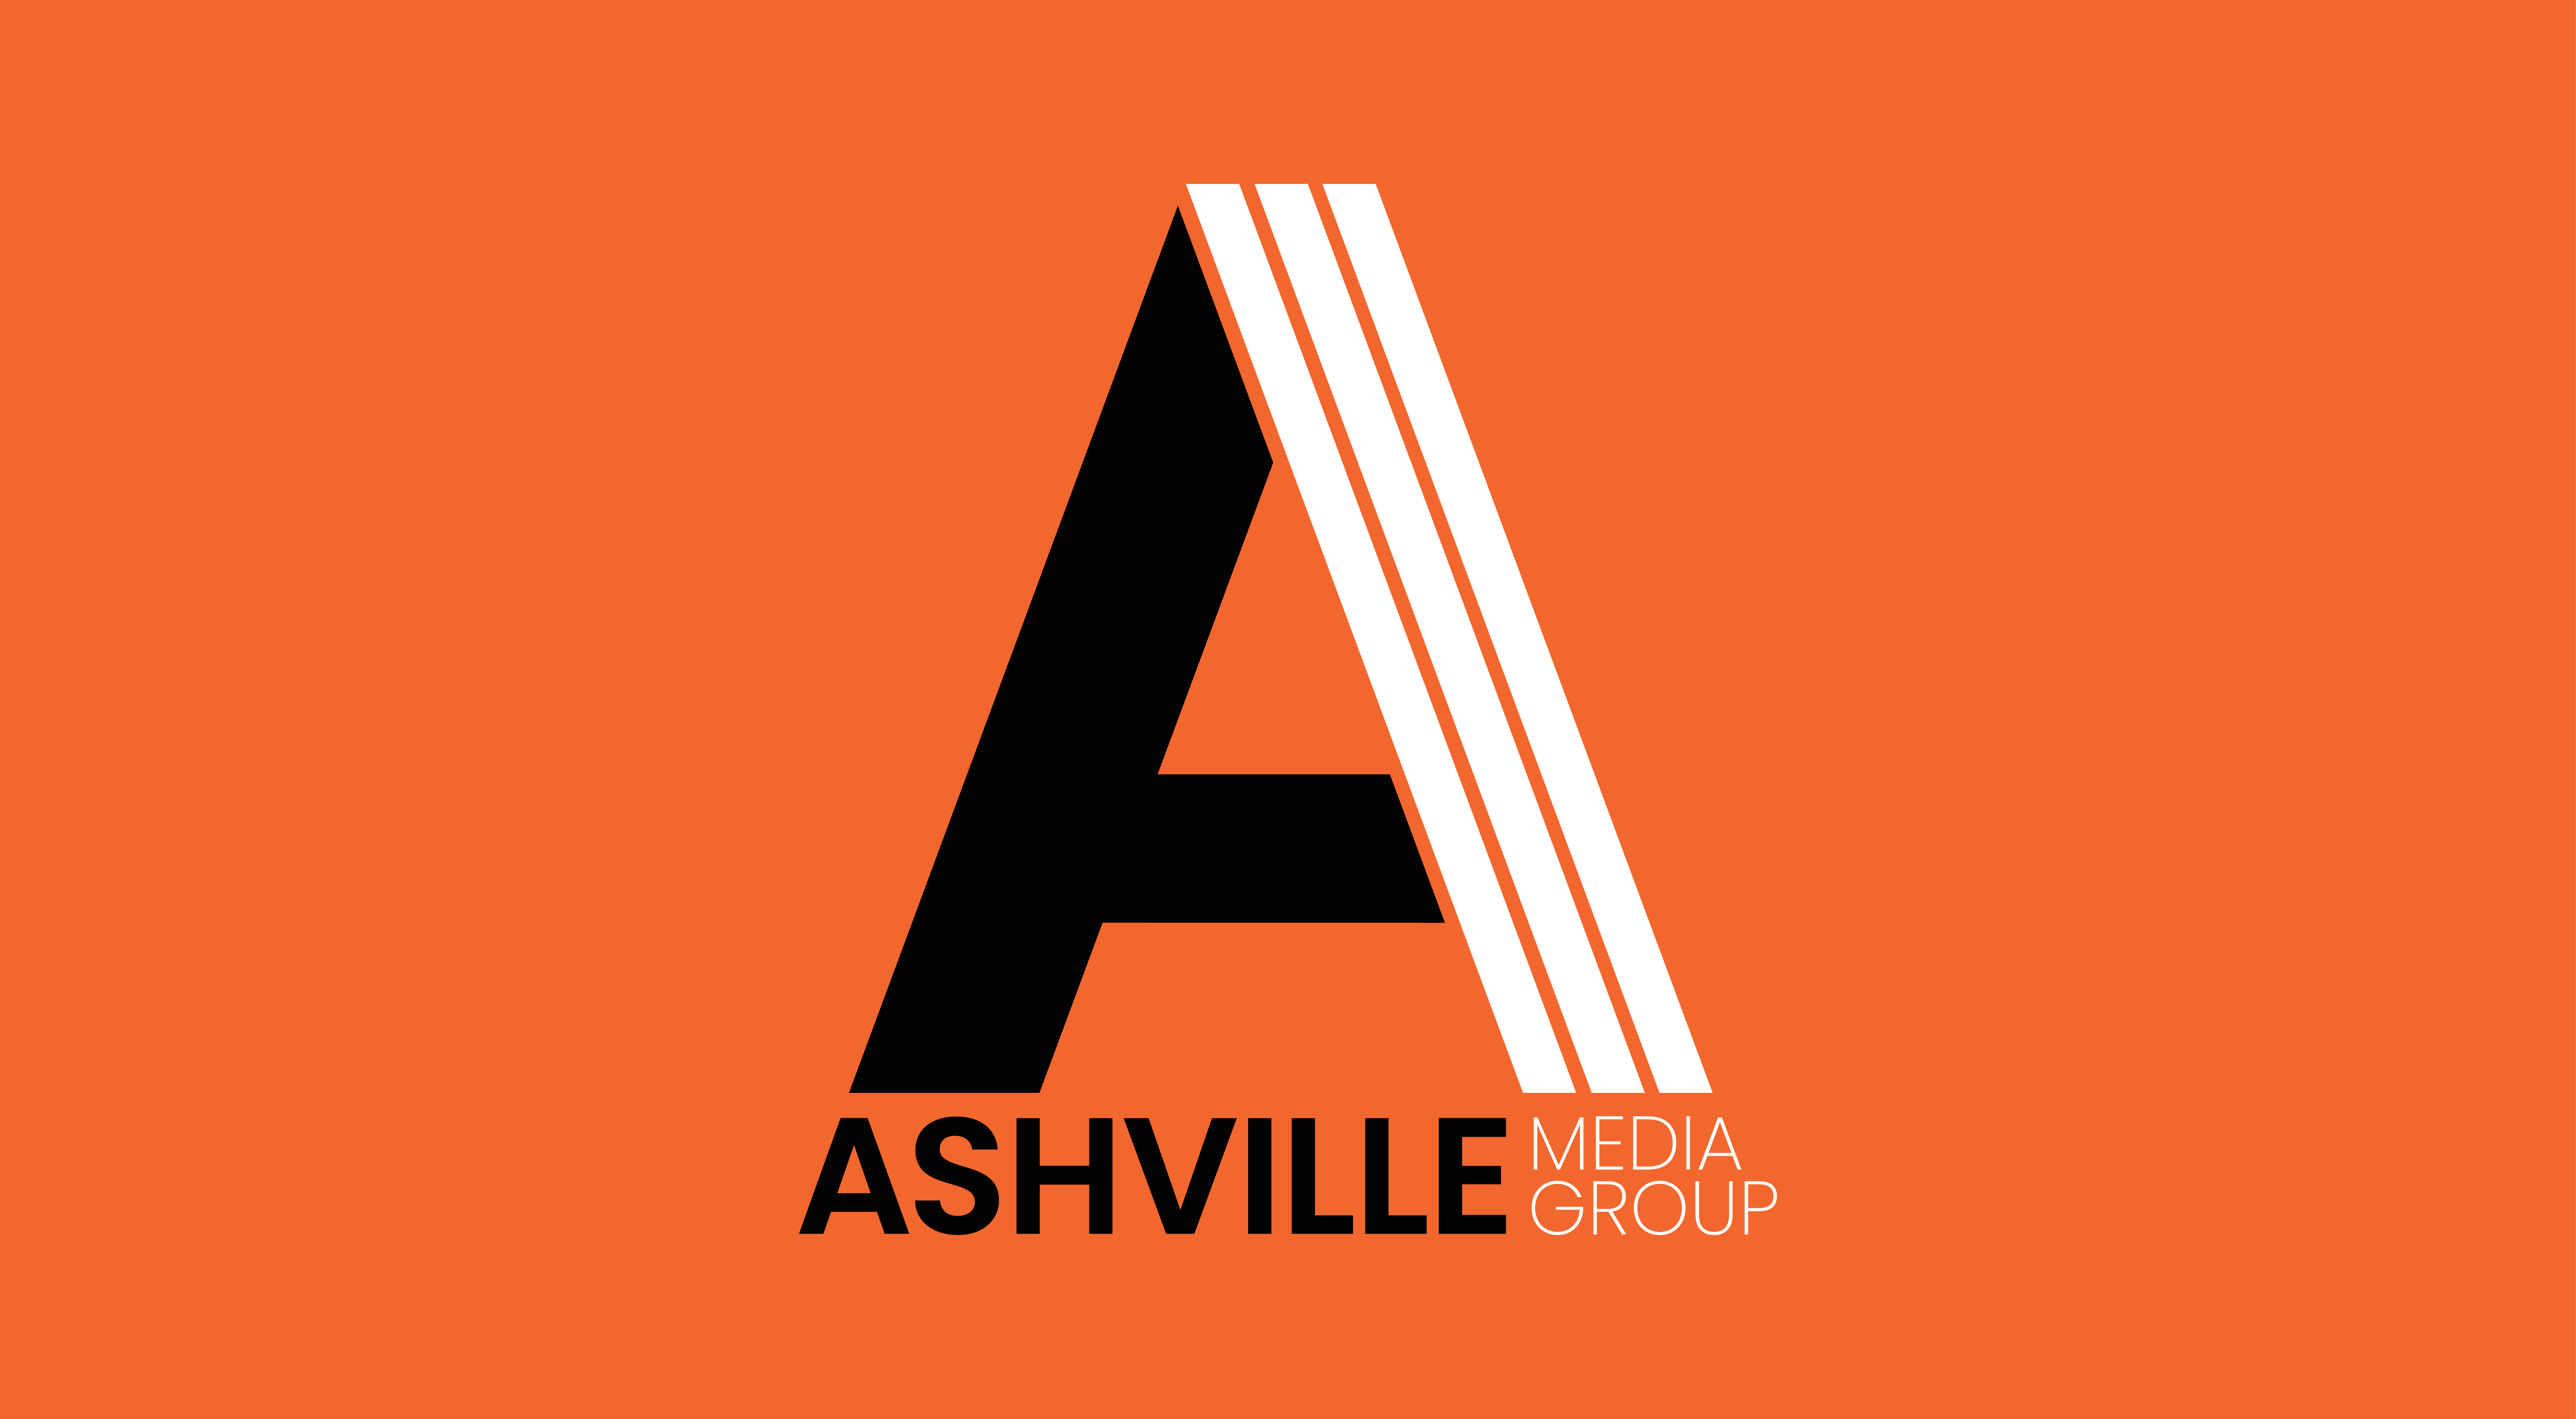 Ashville Media Group Website Holder Image